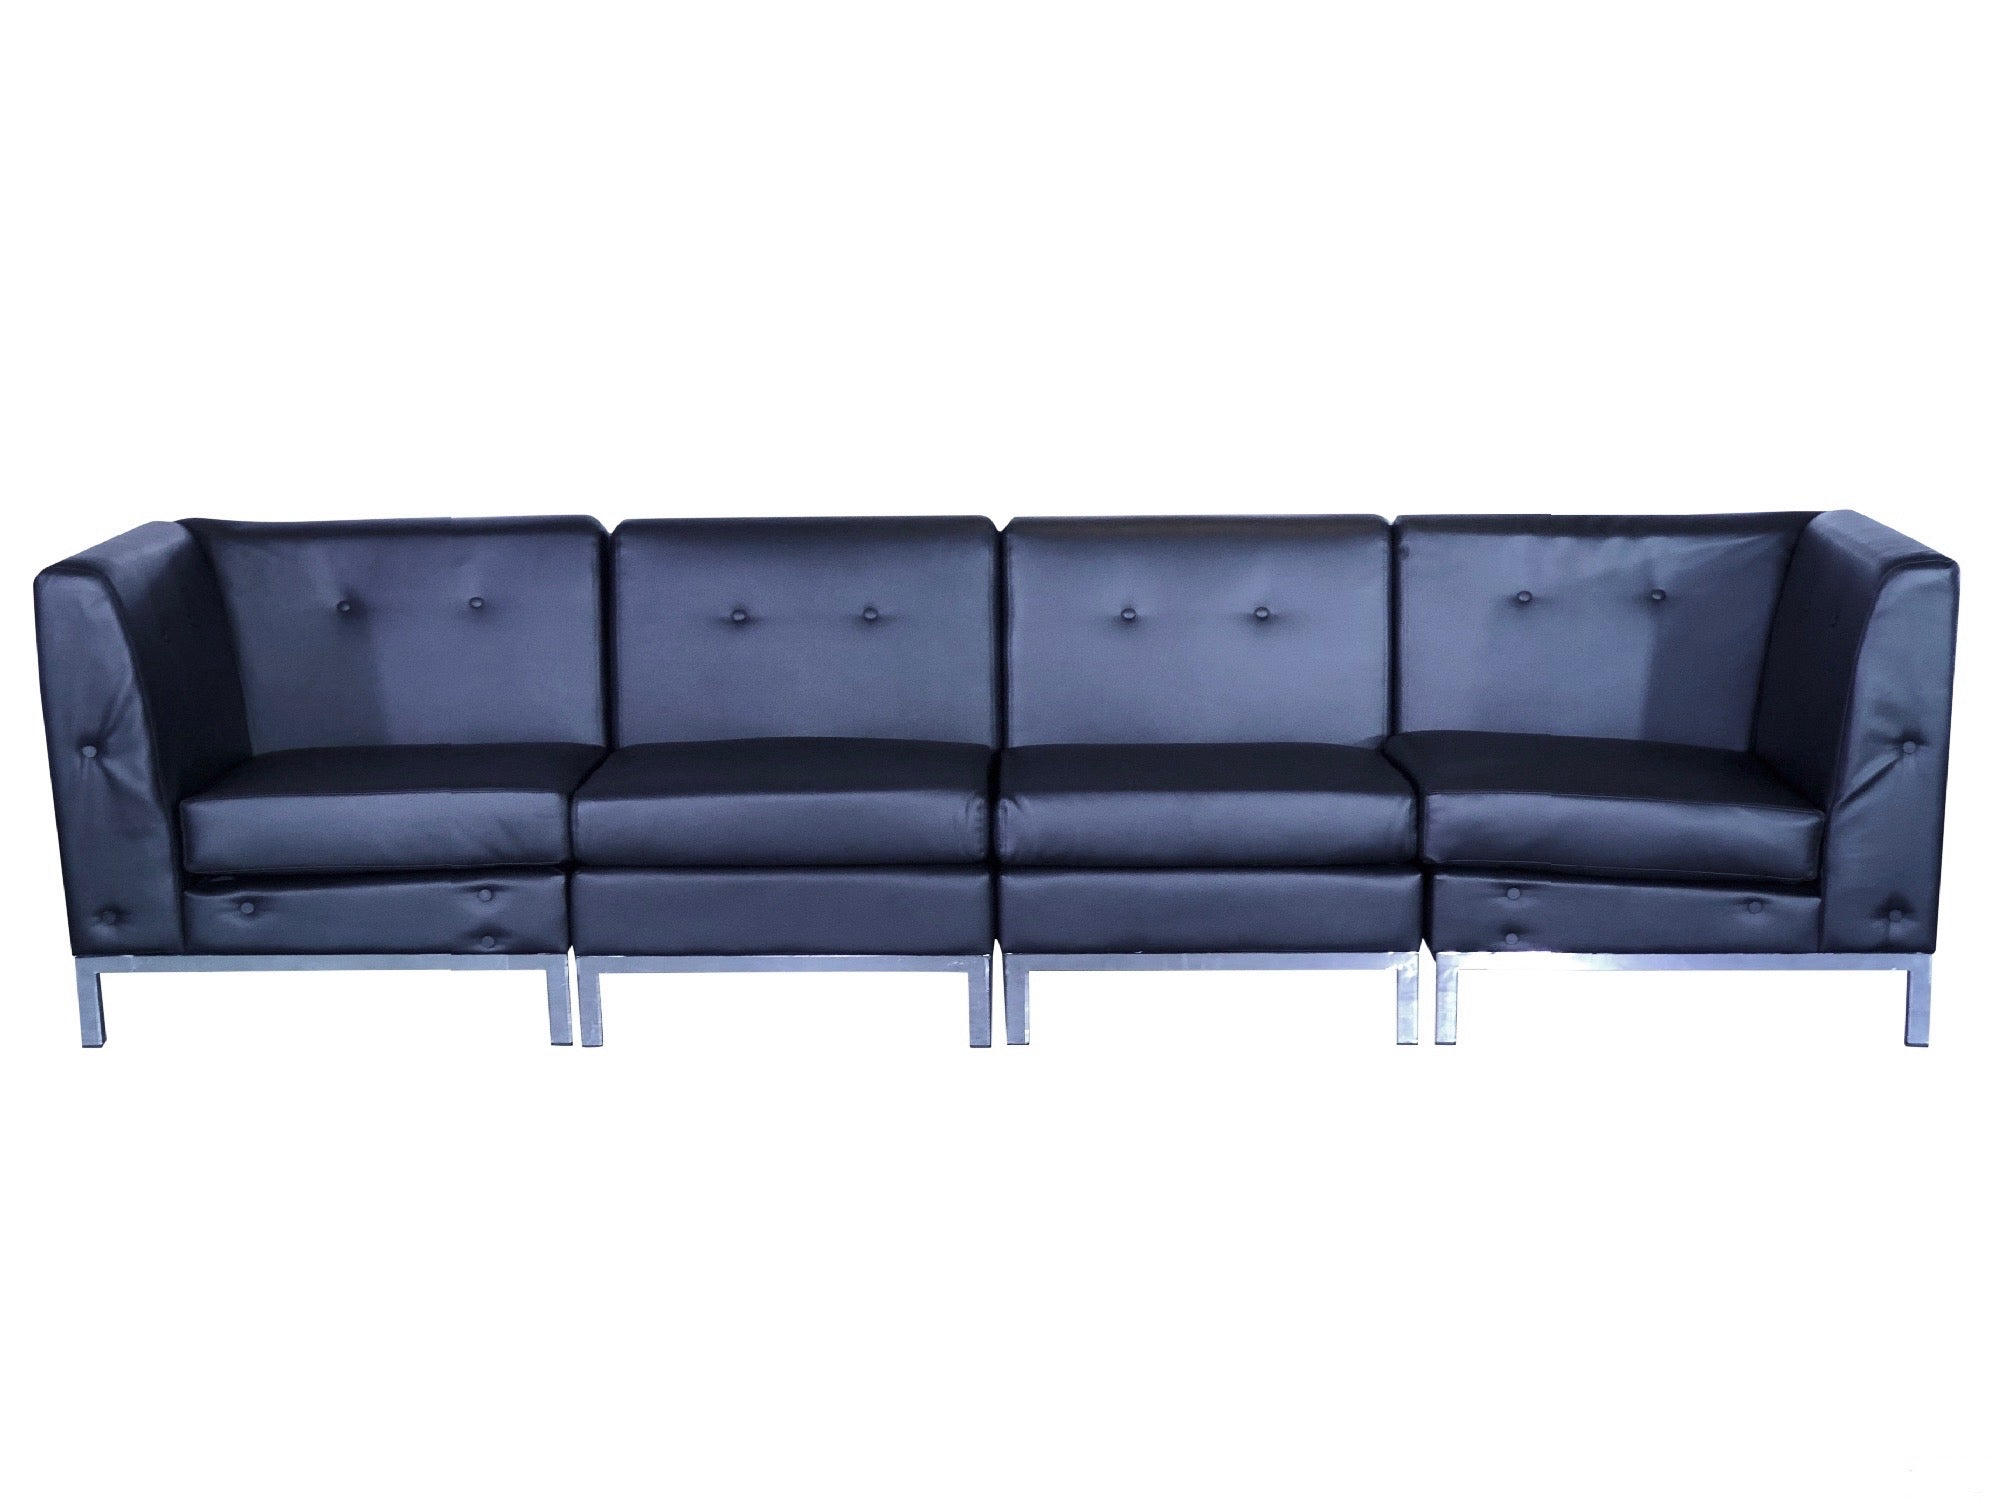 PEACHTREE 4PC SOFA - BLACK